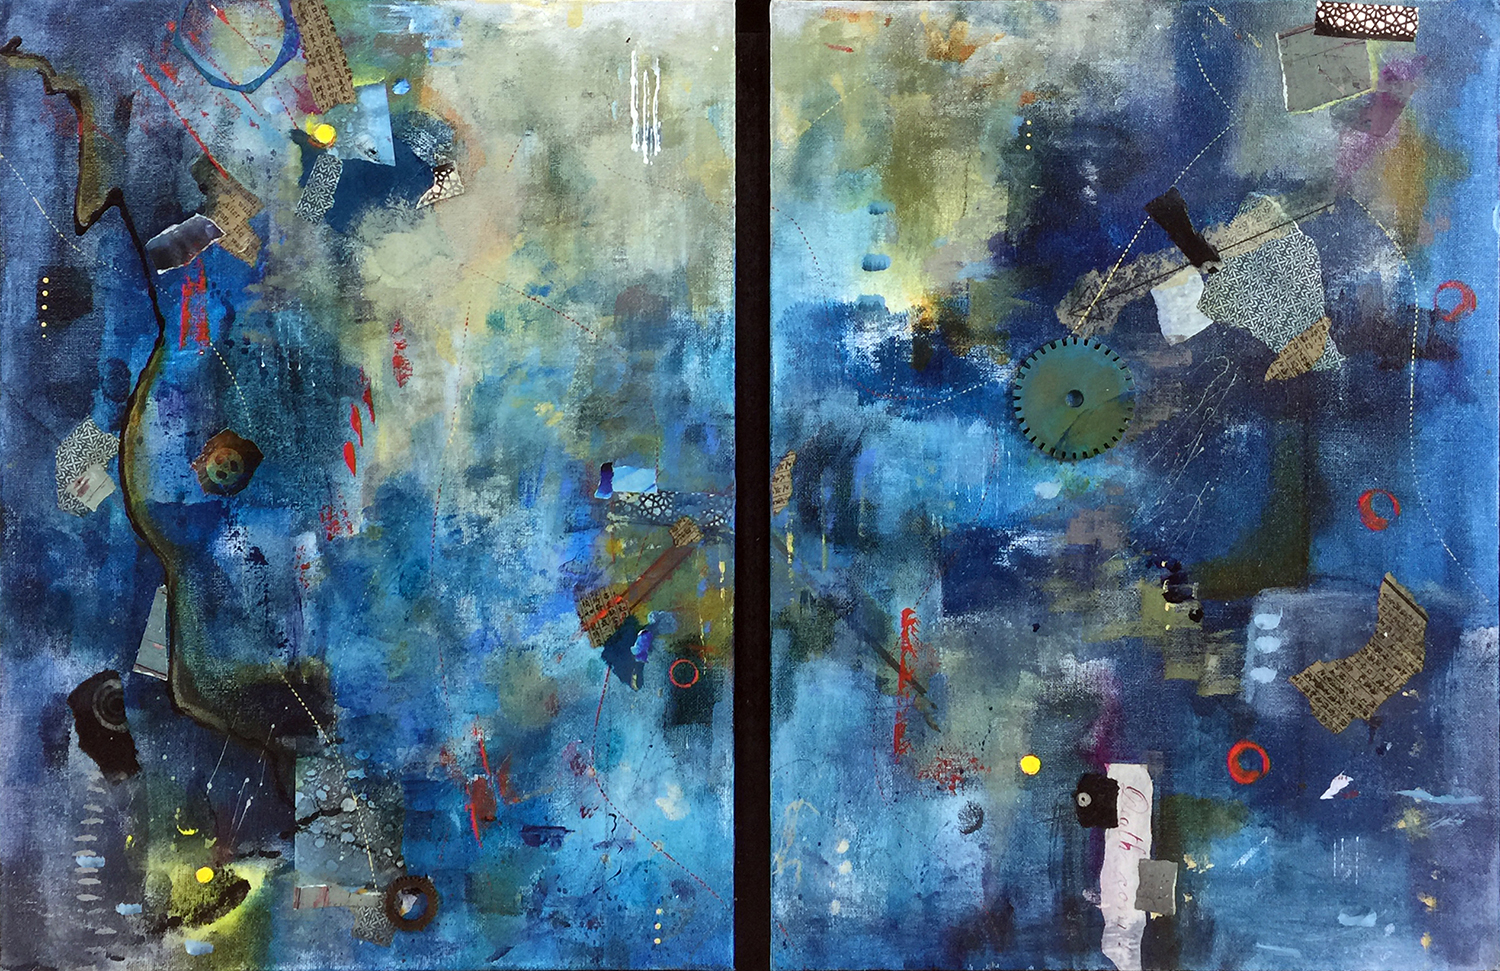 Robin Colodzin,  But most like chaos III , Acrylic, found paper, pencil, pastel, wood gear on canvas panels, each panel 16x12